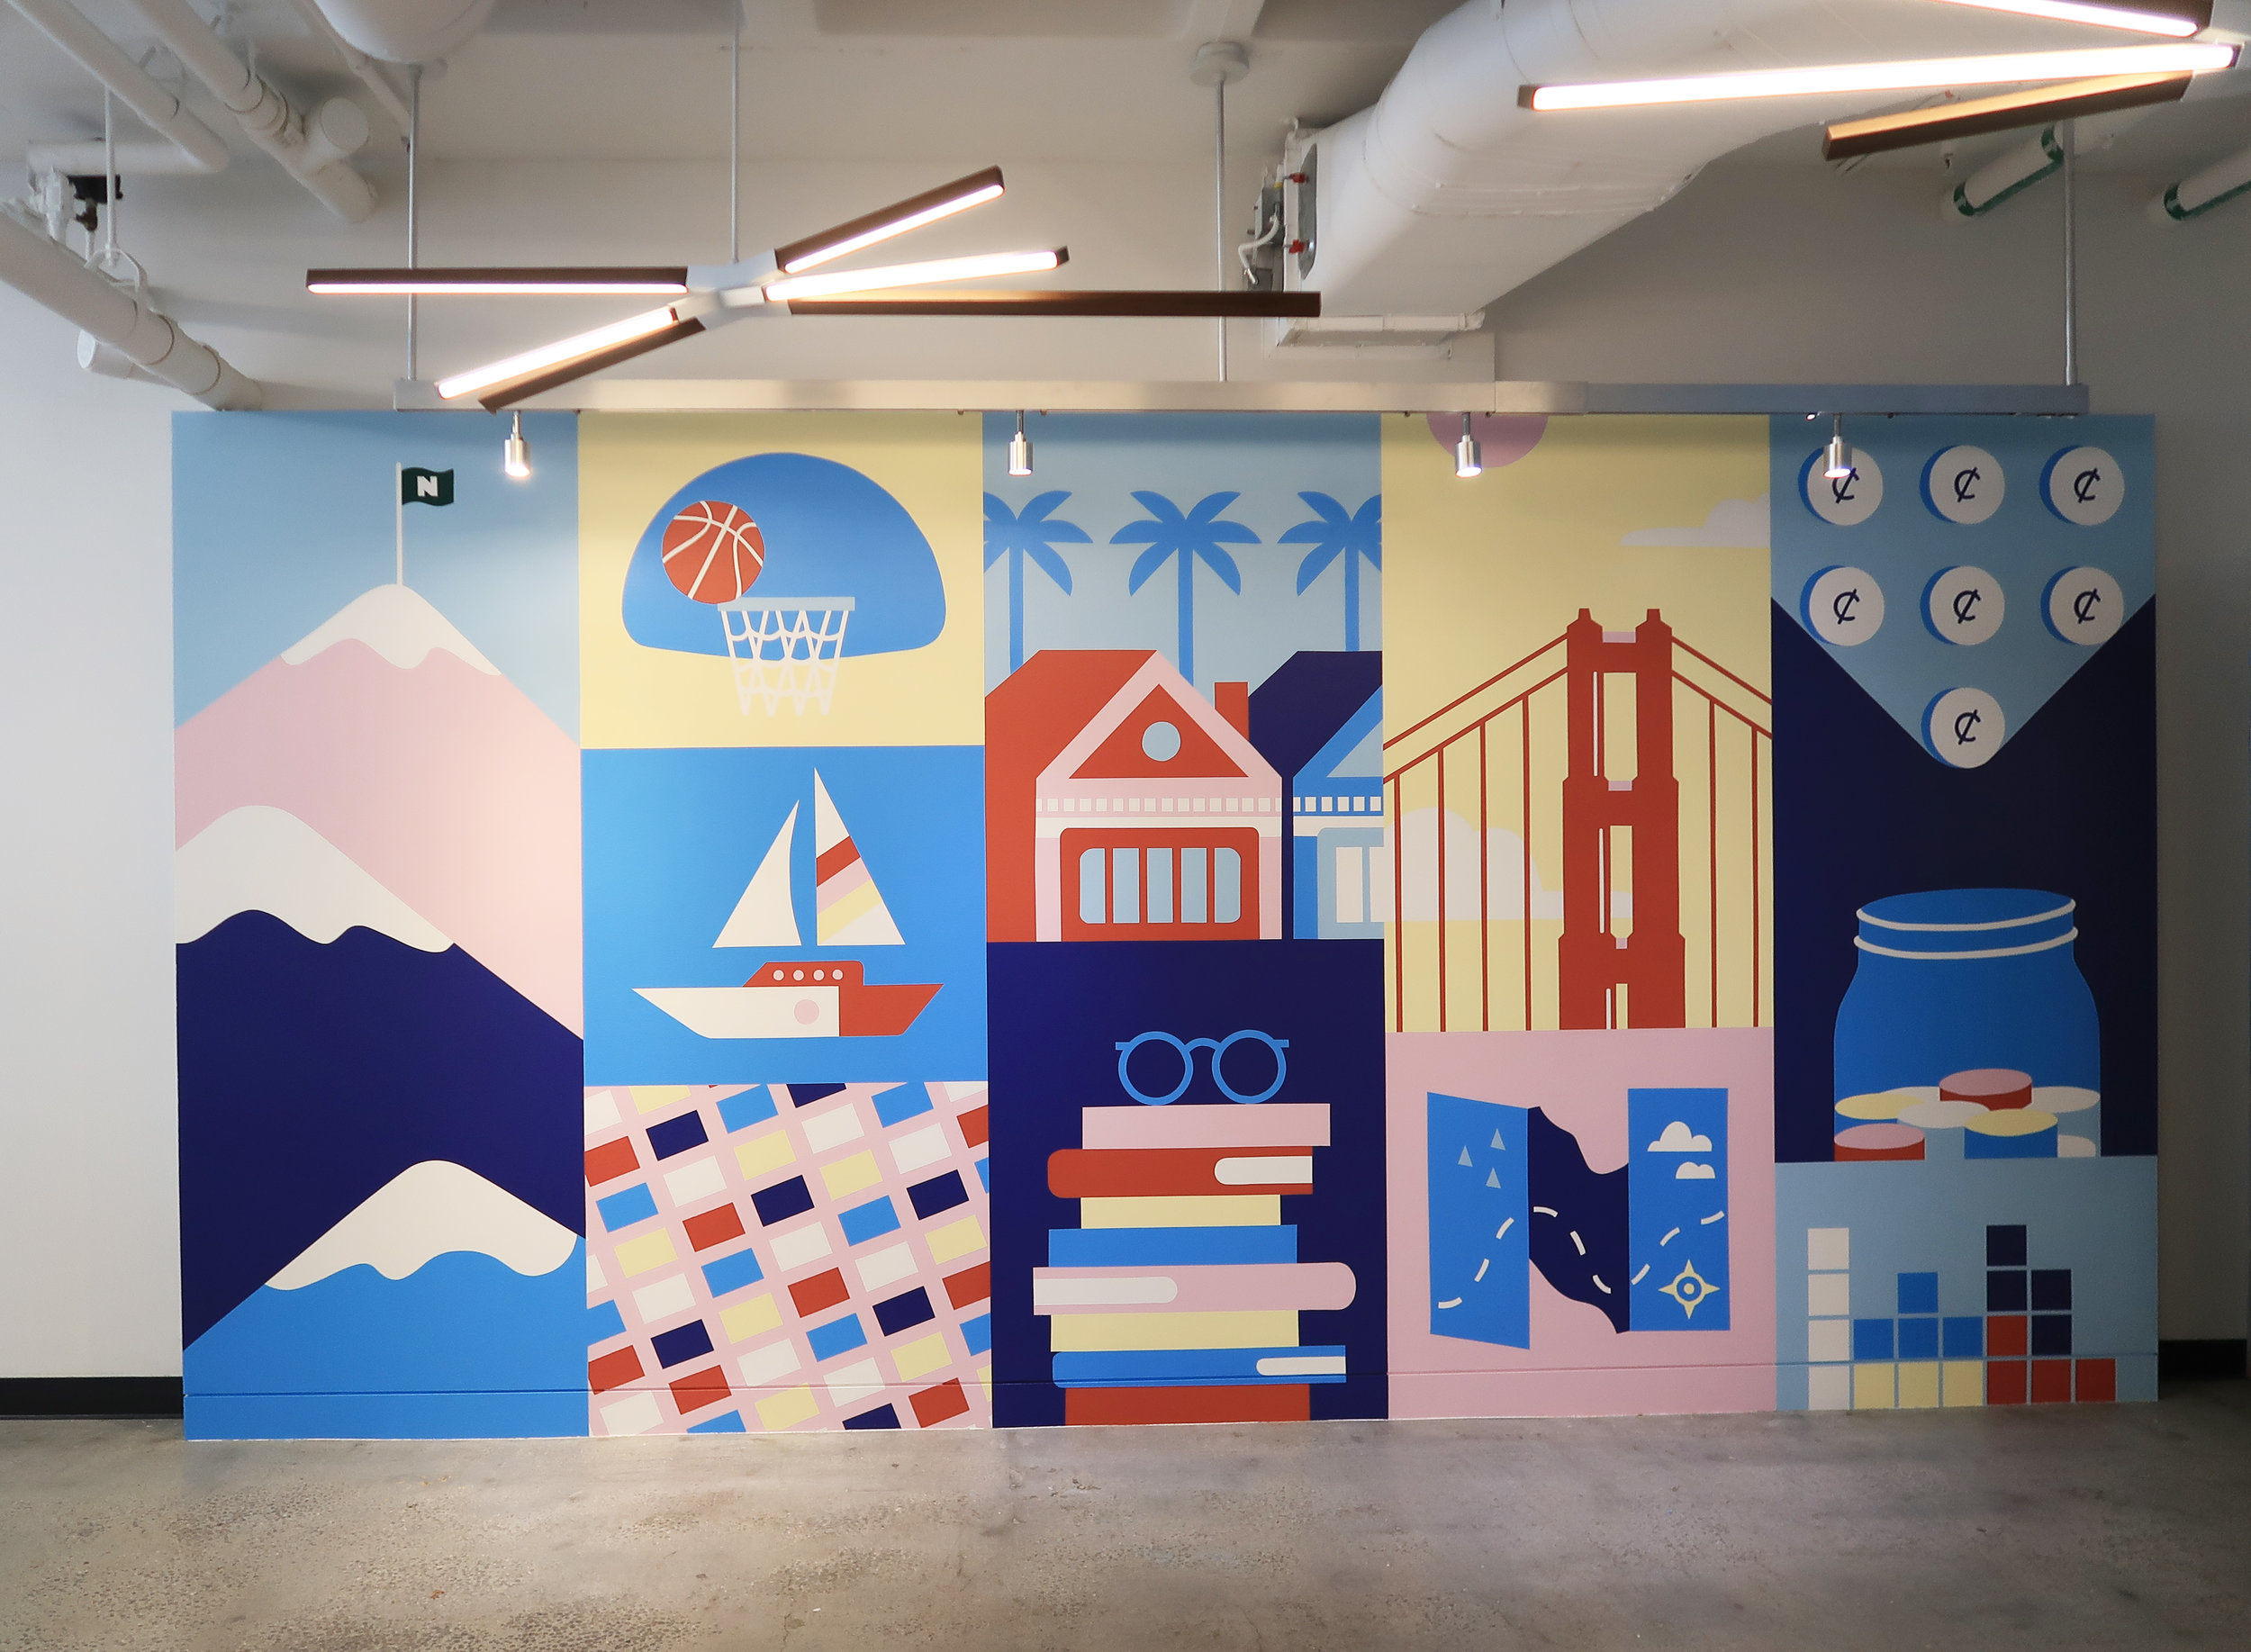 Office-commercial-mural-san-francisco-nerdwallet-wall-and-wall-mural-company_002.jpg